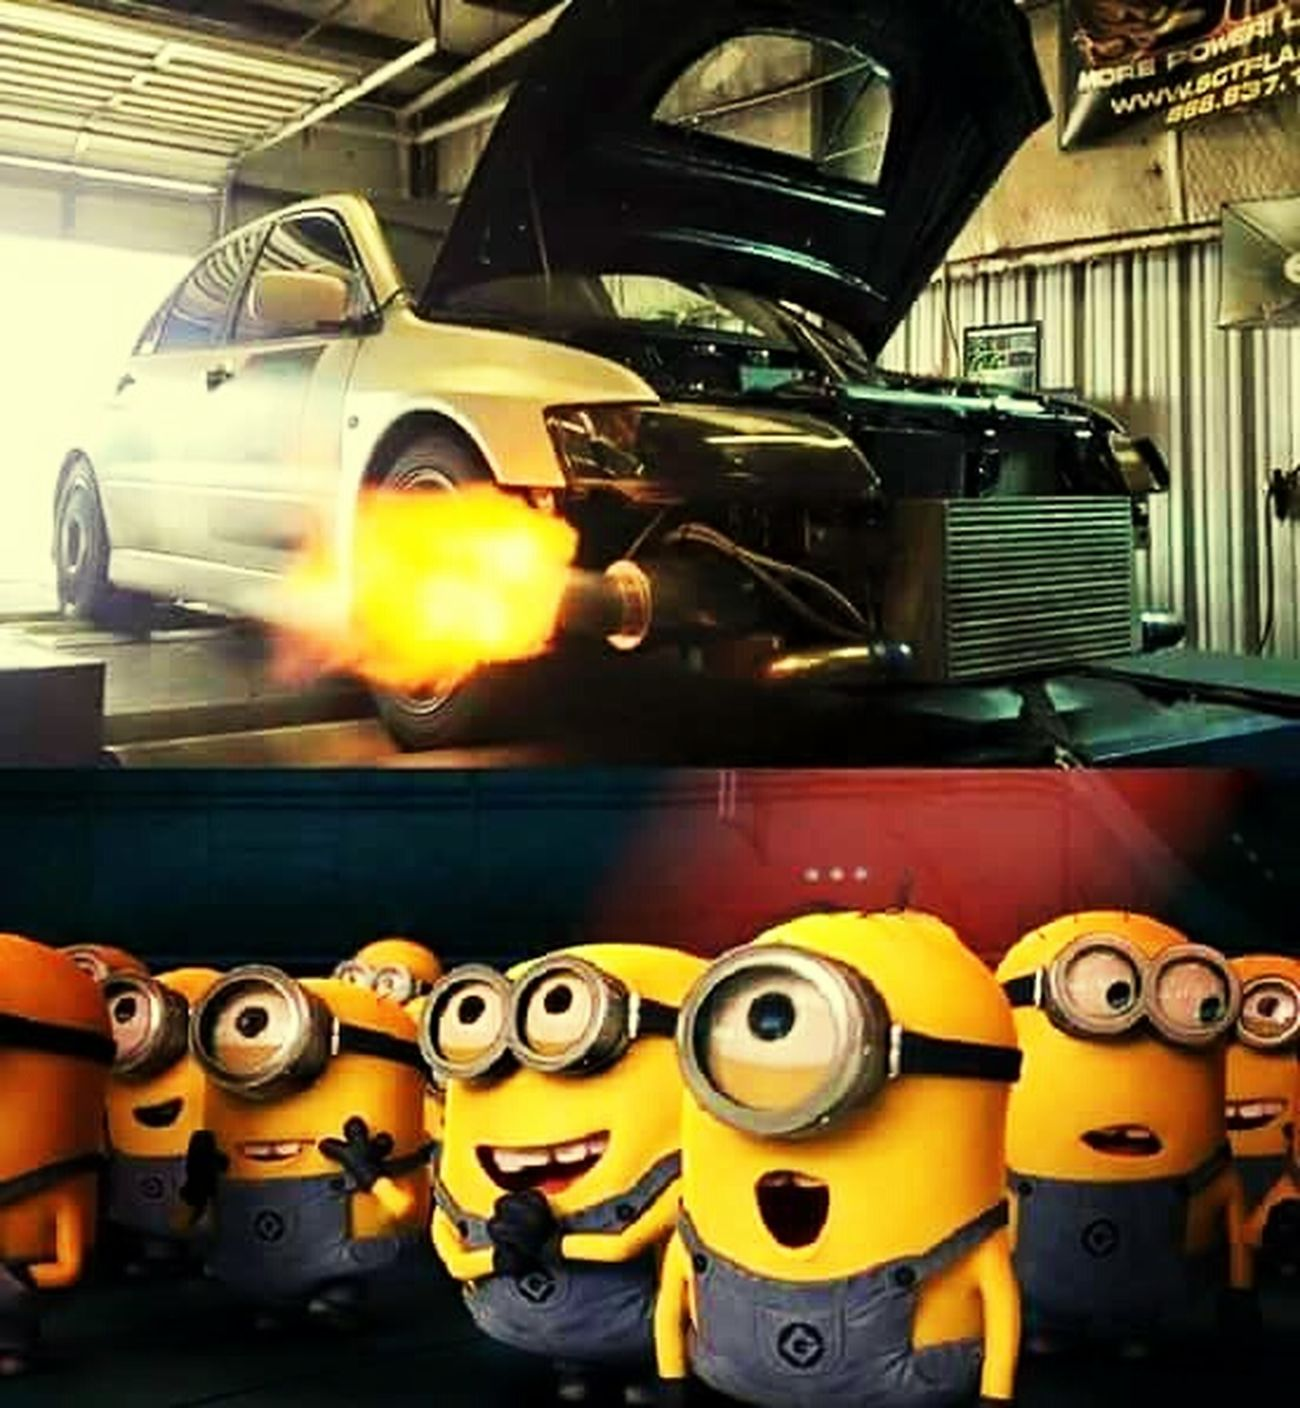 Brapp 💥💥 Color Portrait Car Minions ♥♥ Taking Photos I Love Cars ♥